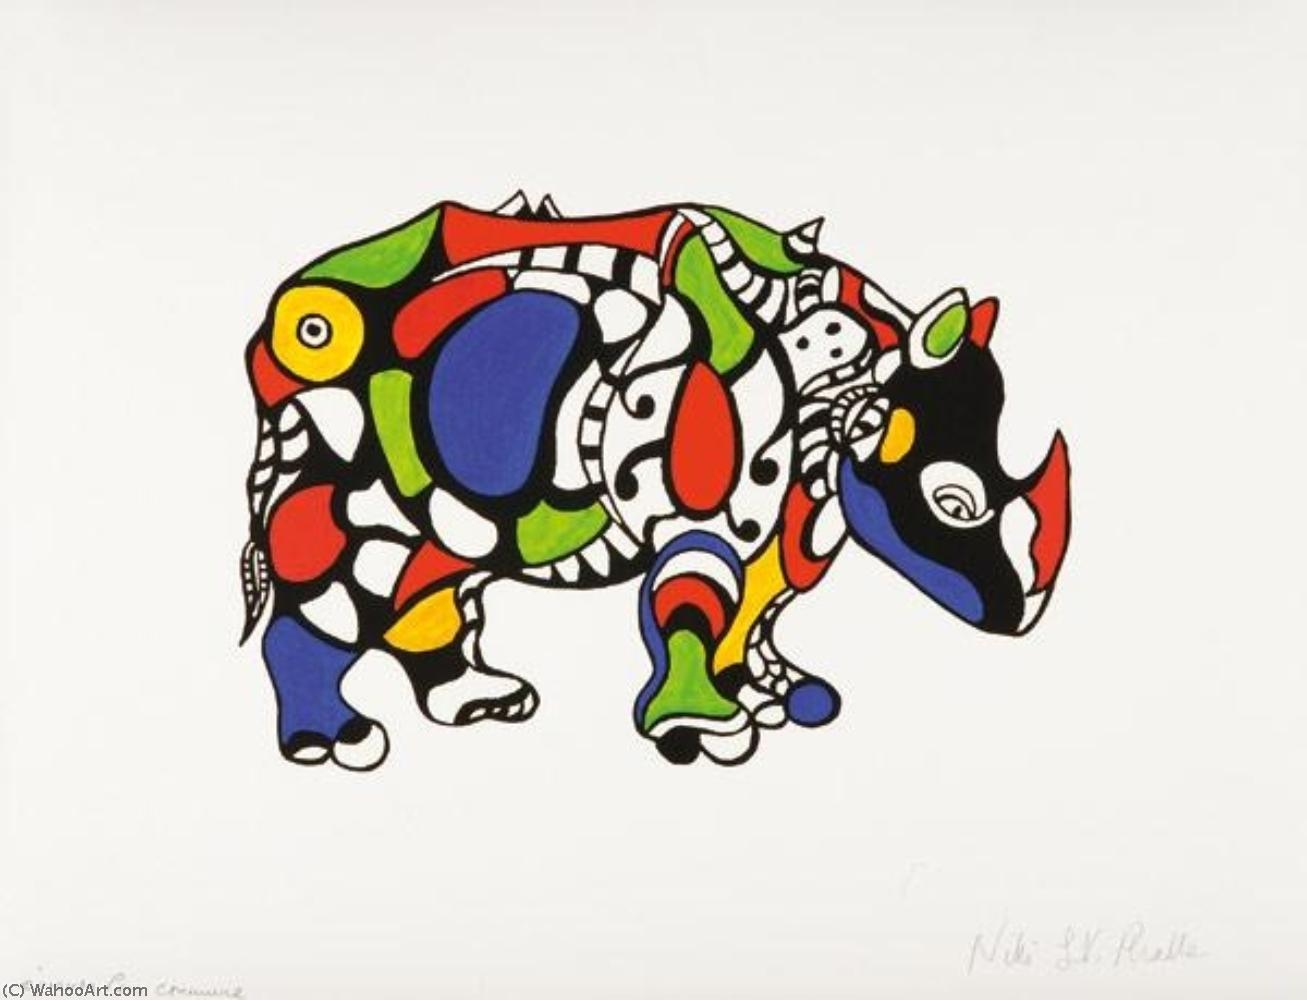 Rhinocéros by Niki De Saint Phalle (1930-2002, France)